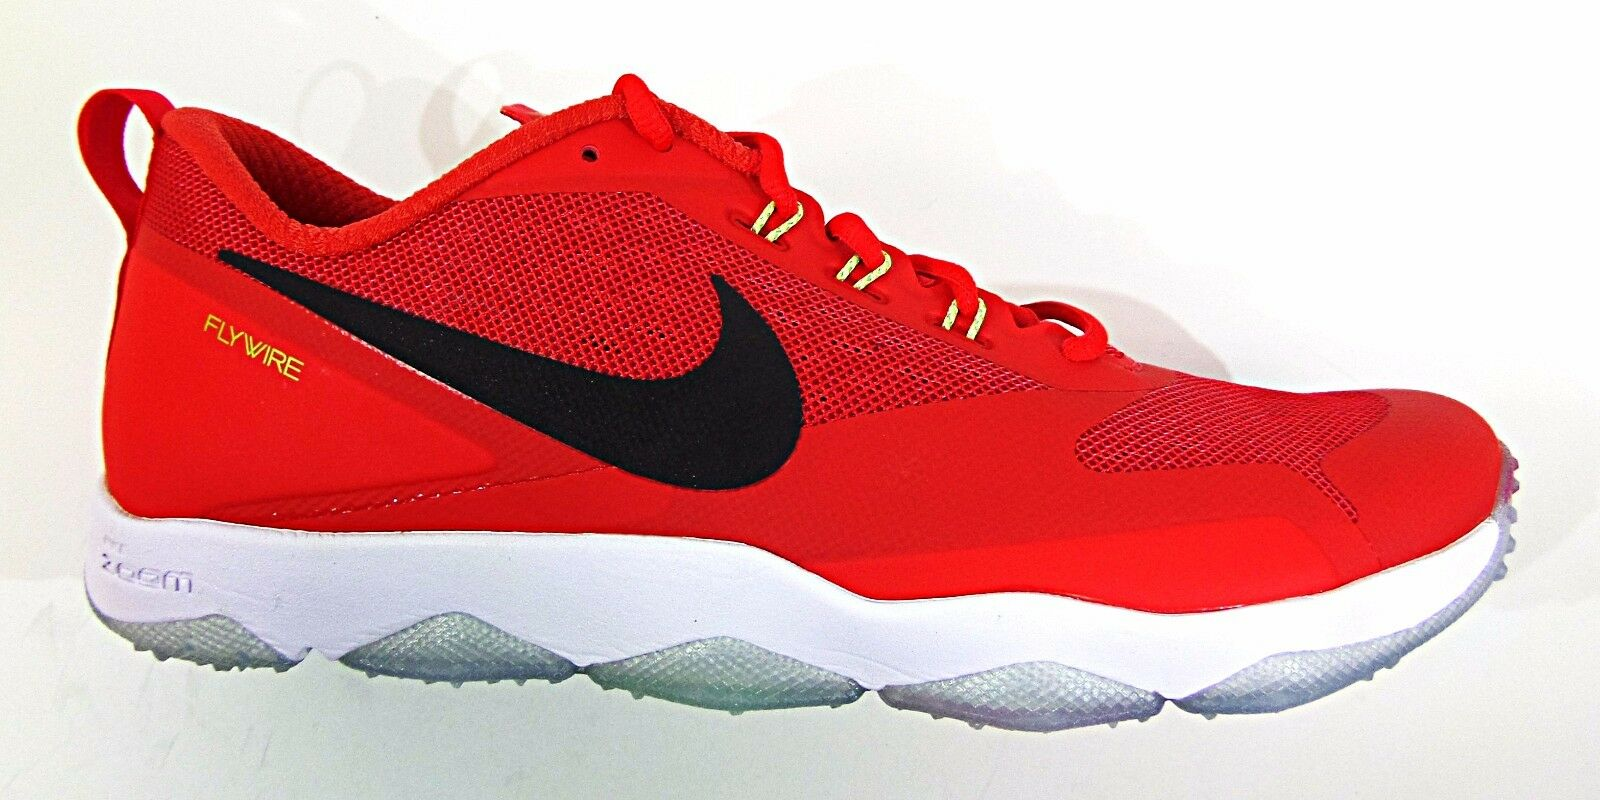 Nike Men's ZOOM HYPERCROSS TR Shoes Red/Black/White 684620-607 a1 Great discount